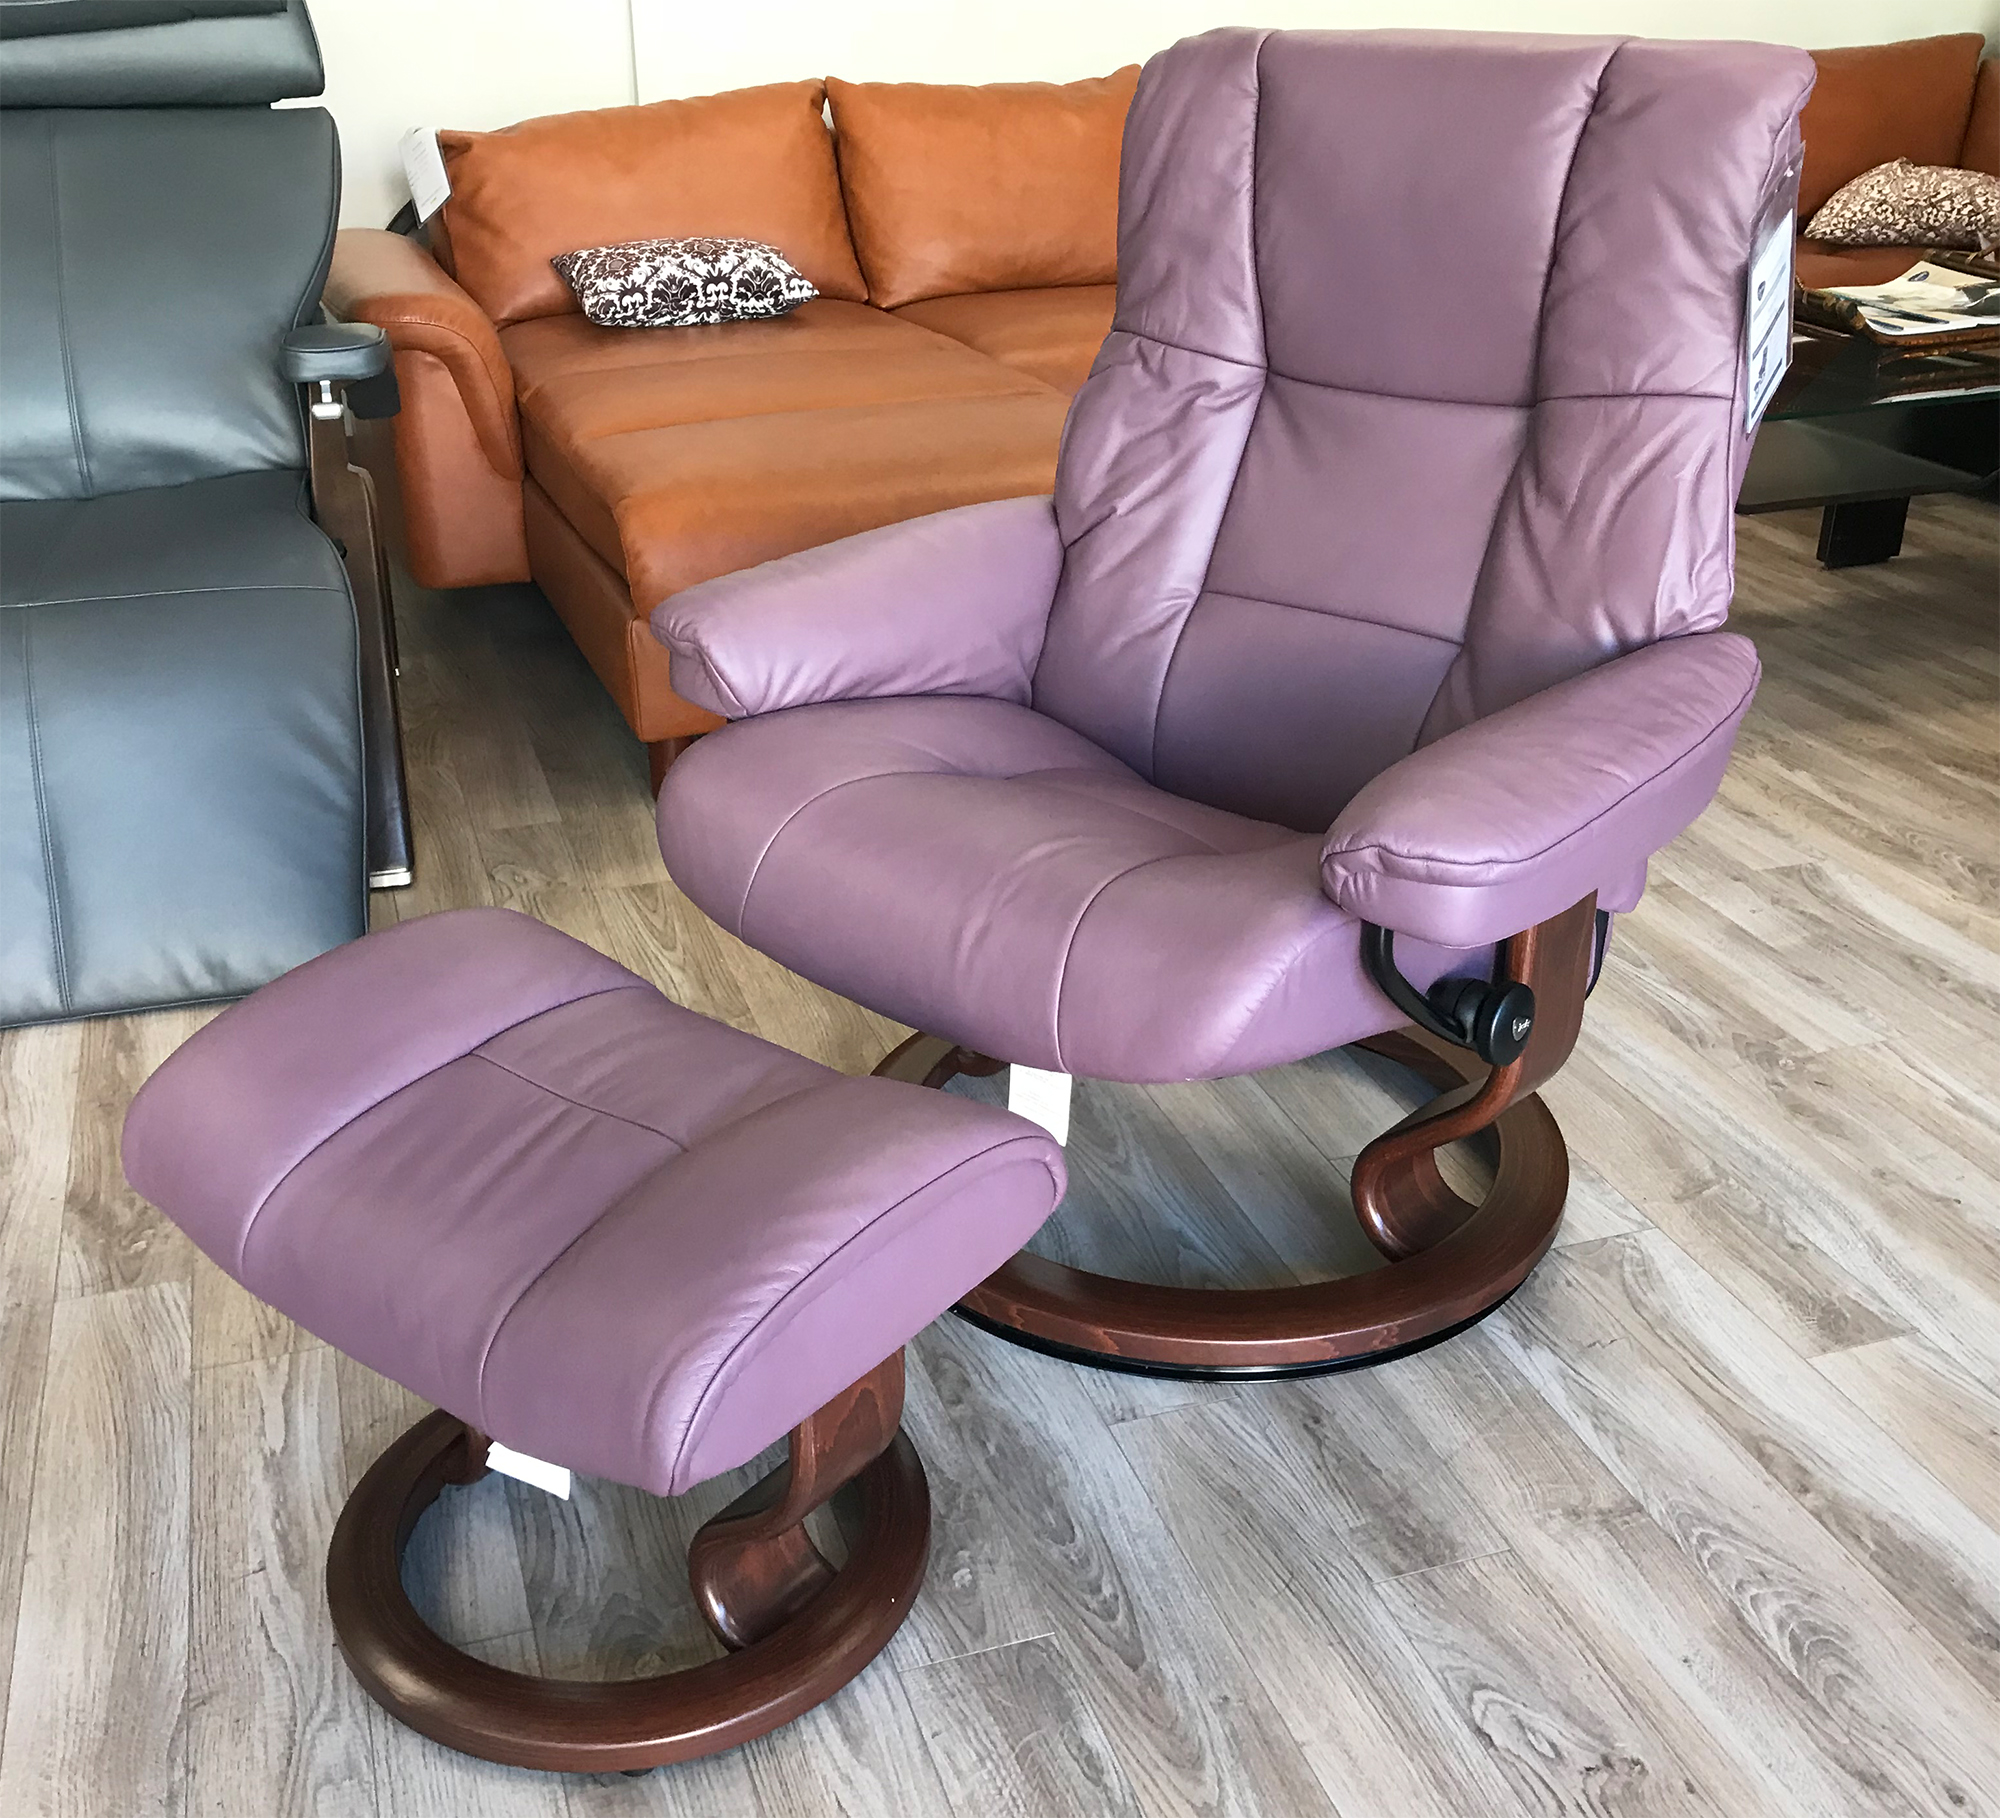 Leather Chairs With Ottoman Stressless Mayfair Paloma Purple Plum Leather Recliner Chair And Ottoman By Ekornes